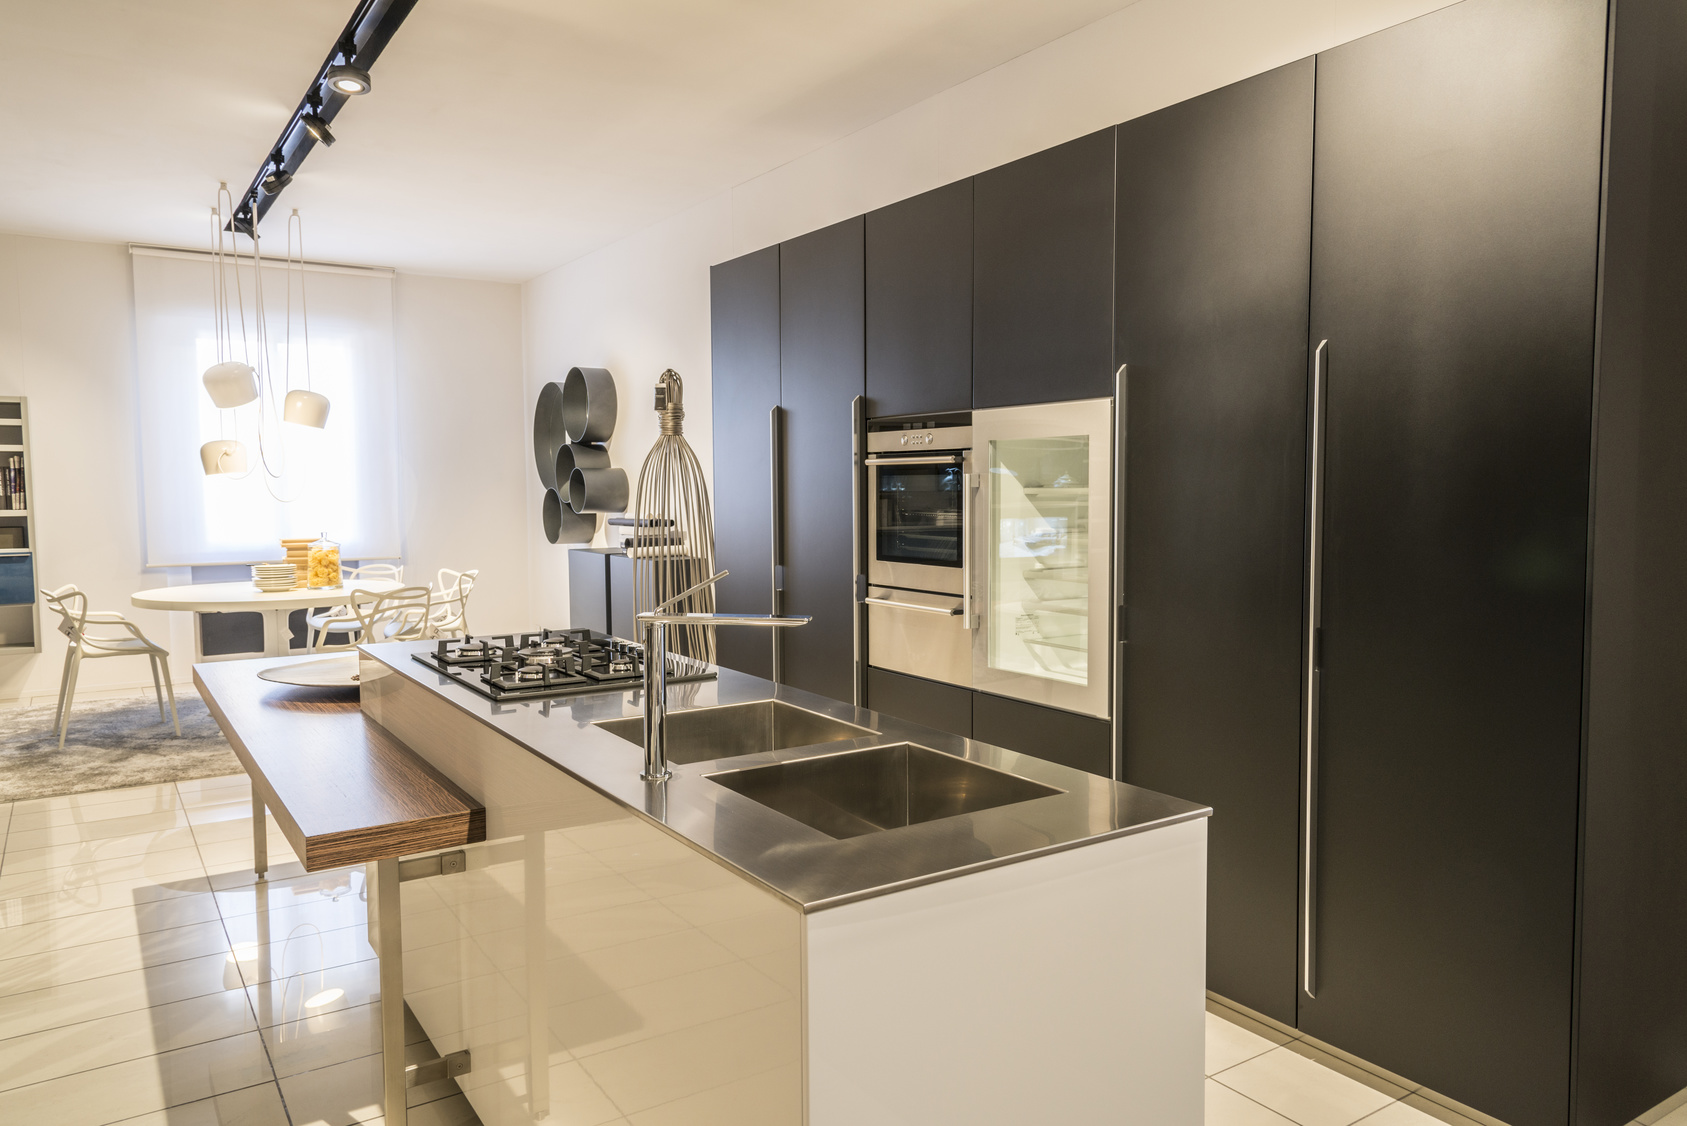 Contemporary kitchen interior in modern house